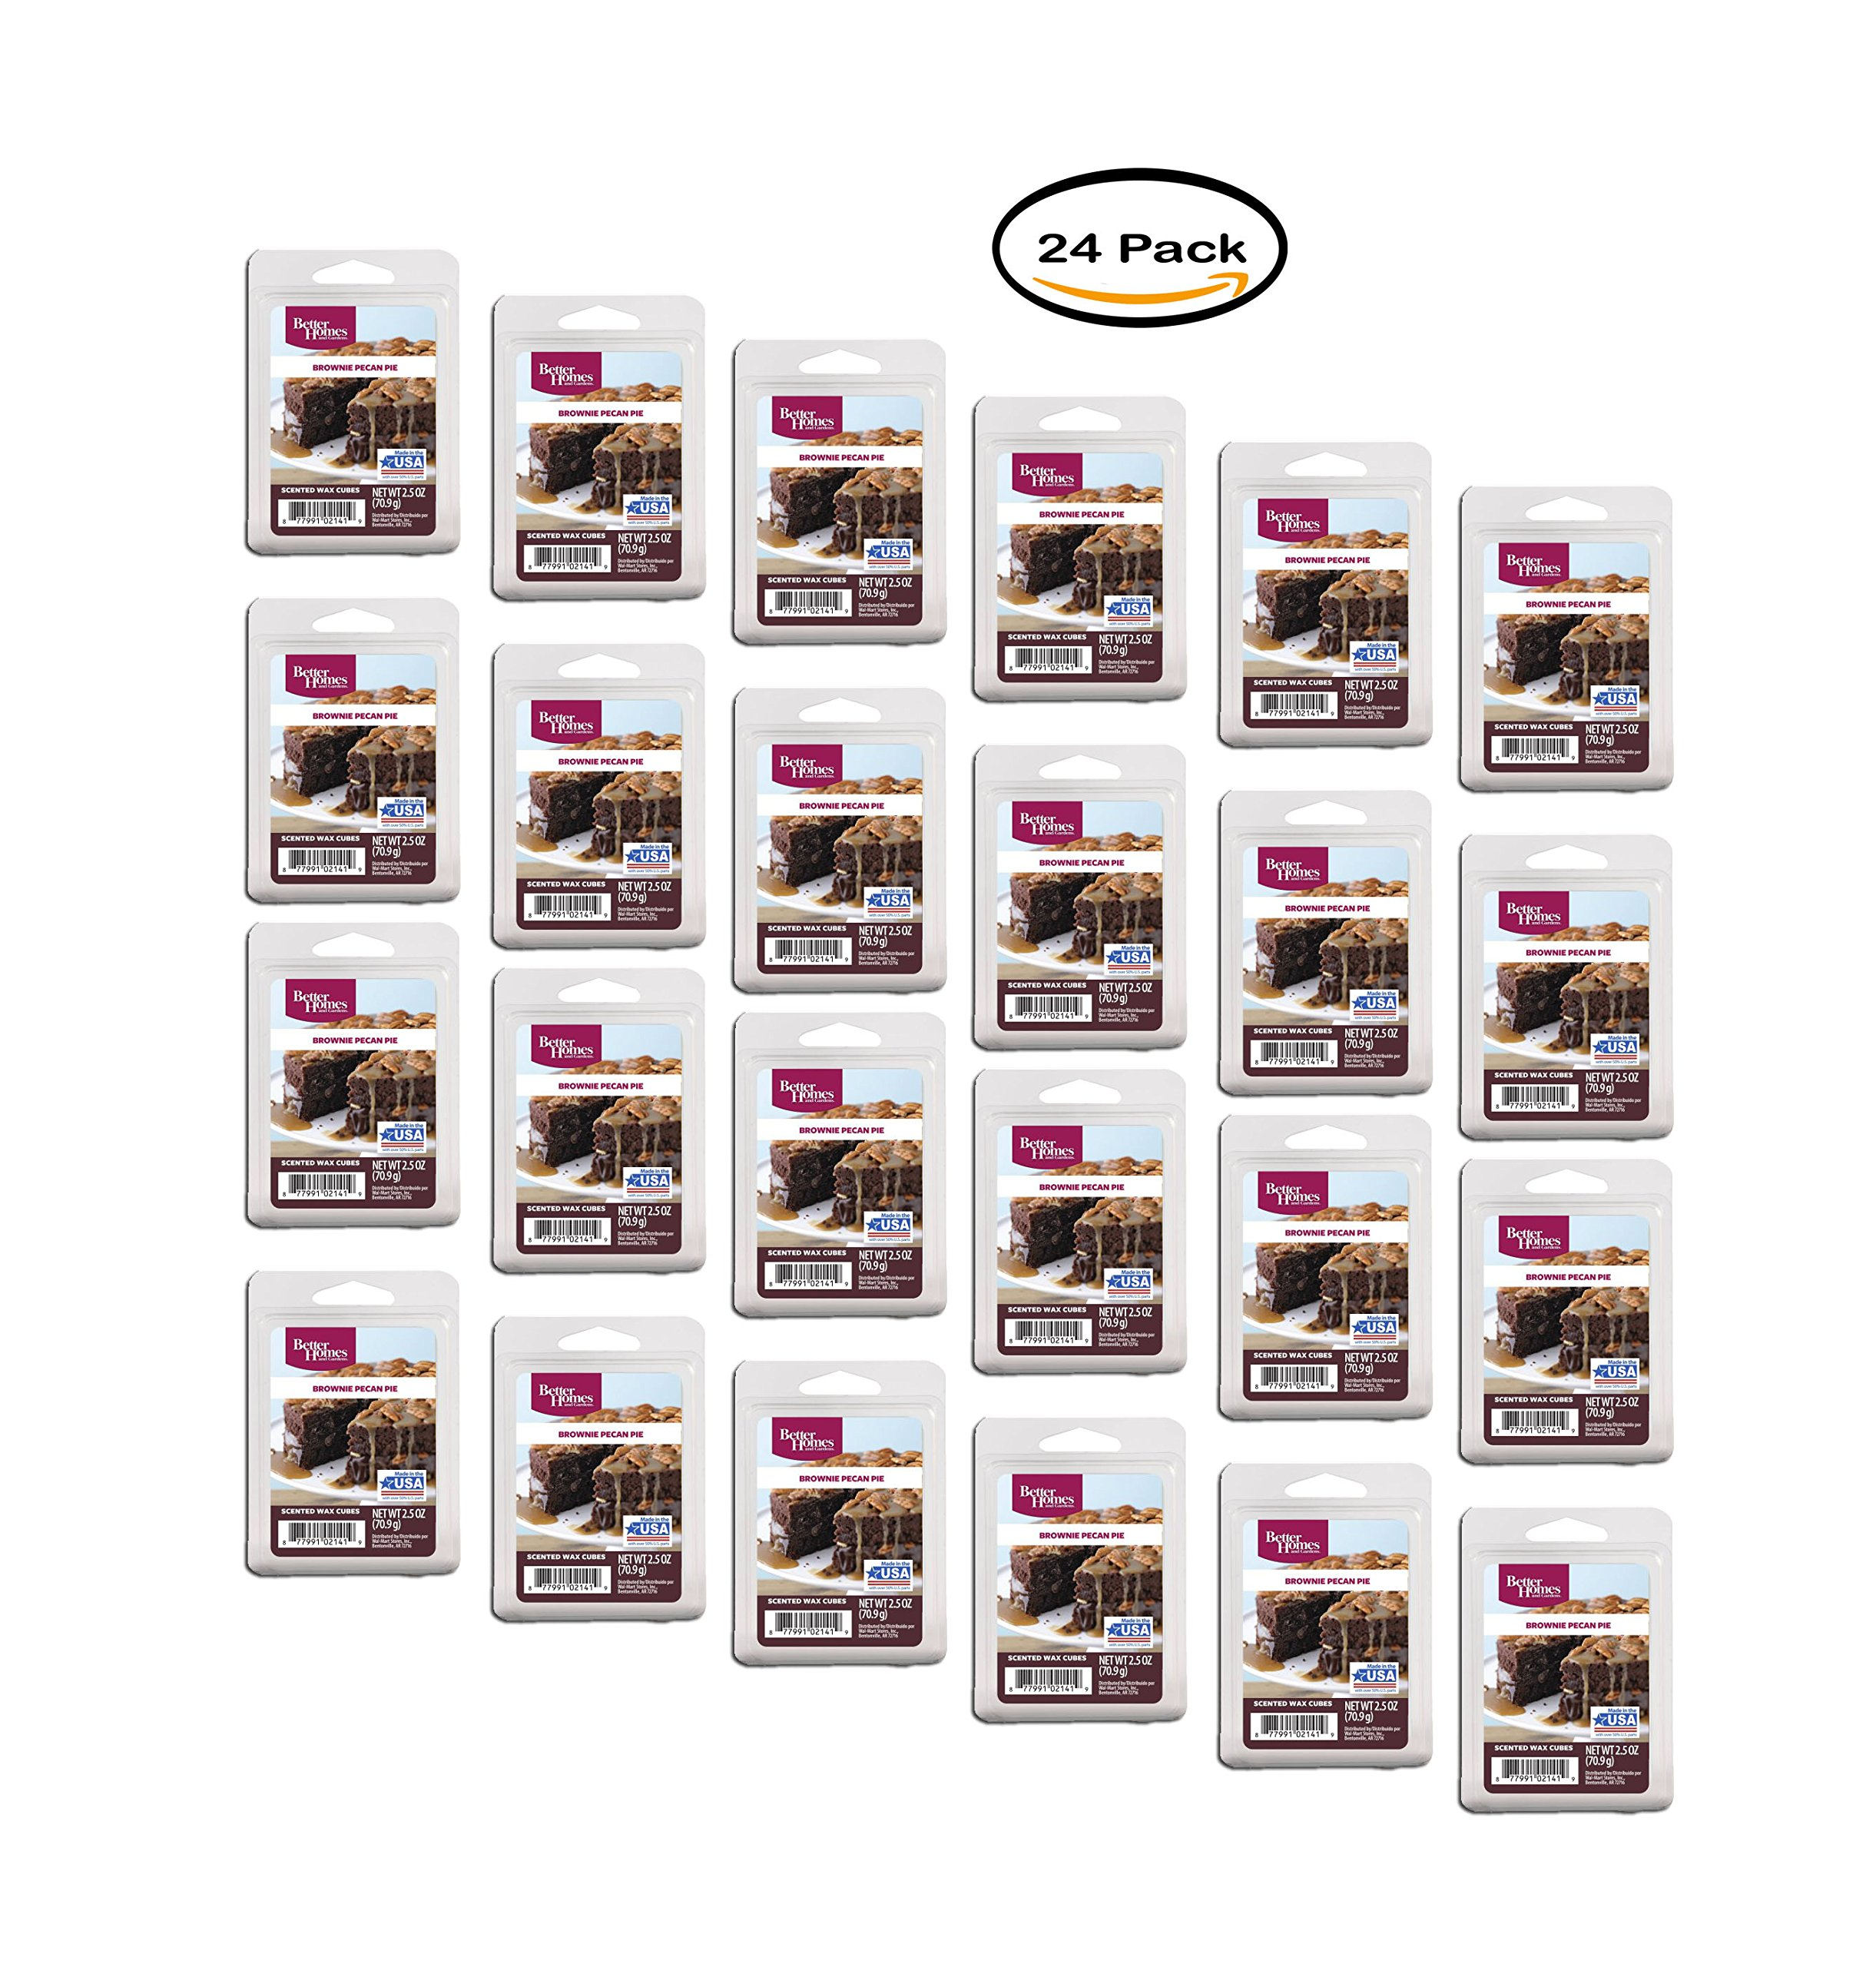 PACK OF 24 - Better Homes and Gardens Brownie Pecan Pie Fragrance Wax Cubes by Better Homes and Gardens